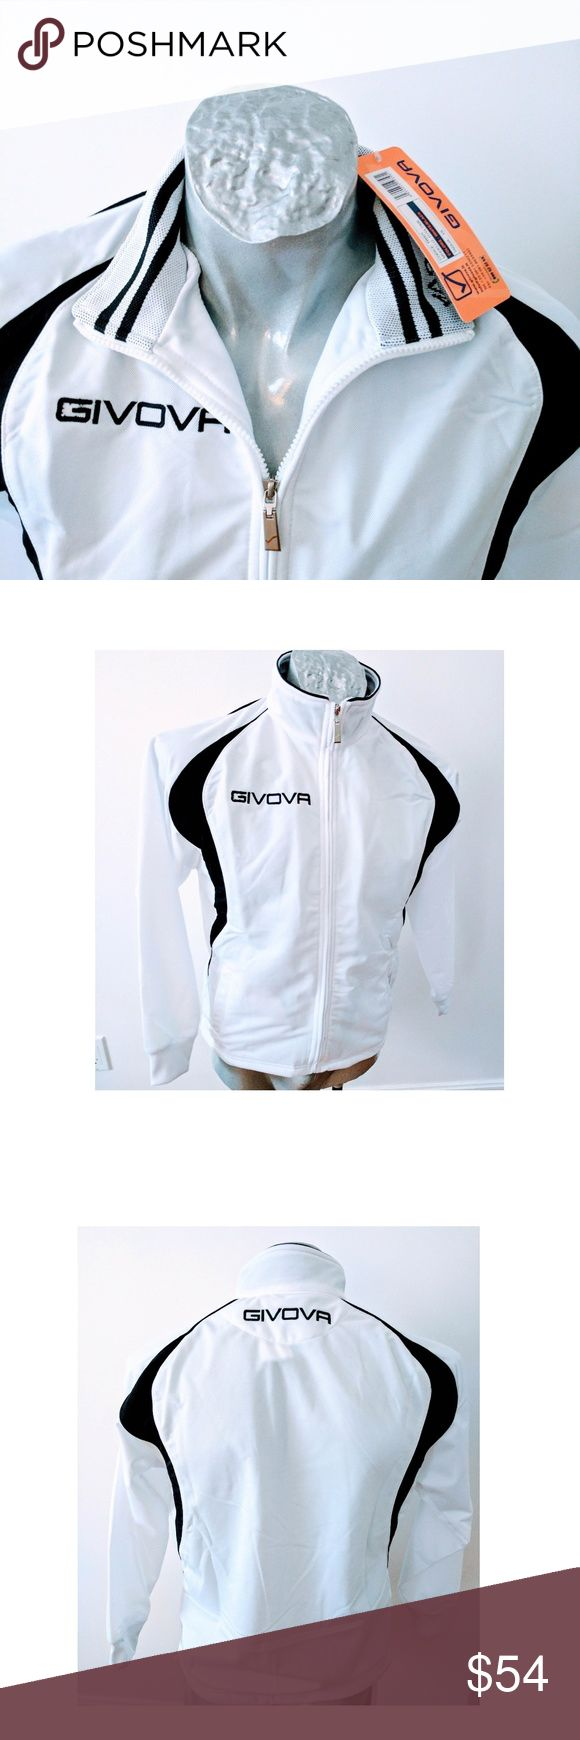 "Givova Jacket Italy Track Sports Zip White Black Givova White Black Track Warm Up Jacket  New w tags  Italian Designer  White and Black   Embroidered Logos  Long Sleeve  Zipper  Measured Flat:   Size XS  Length Center back ( neck seam to hem) 24""  Width Arm pit to arm pit 19""  Sleeve ( mid back neck to cuff) 30""  Size S  Length Center back ( neck seam to hem) 26""  Width Arm pit to arm pit 20.5""  Sleeve ( mid back neck to cuff) 33.5""  New with tags Givova Jackets & Coats"